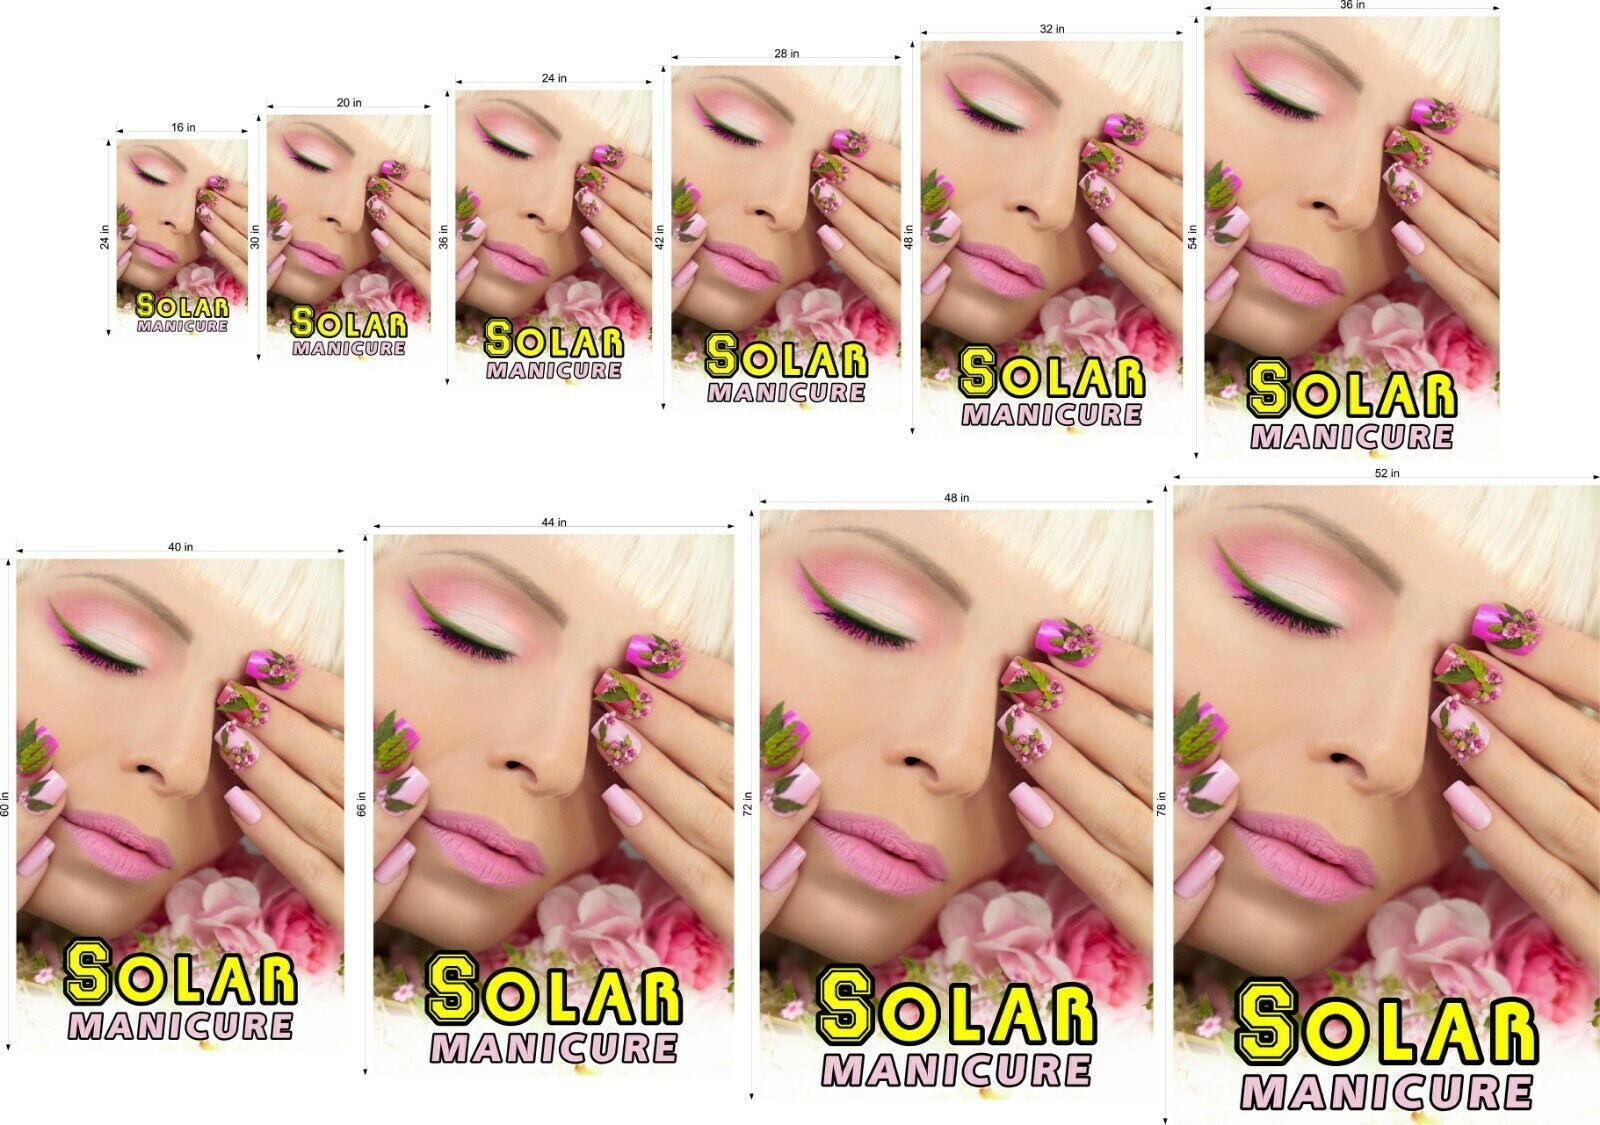 Solar V Perforated 70/30 See Through Window Poster Manicure Nail Salon Vertical